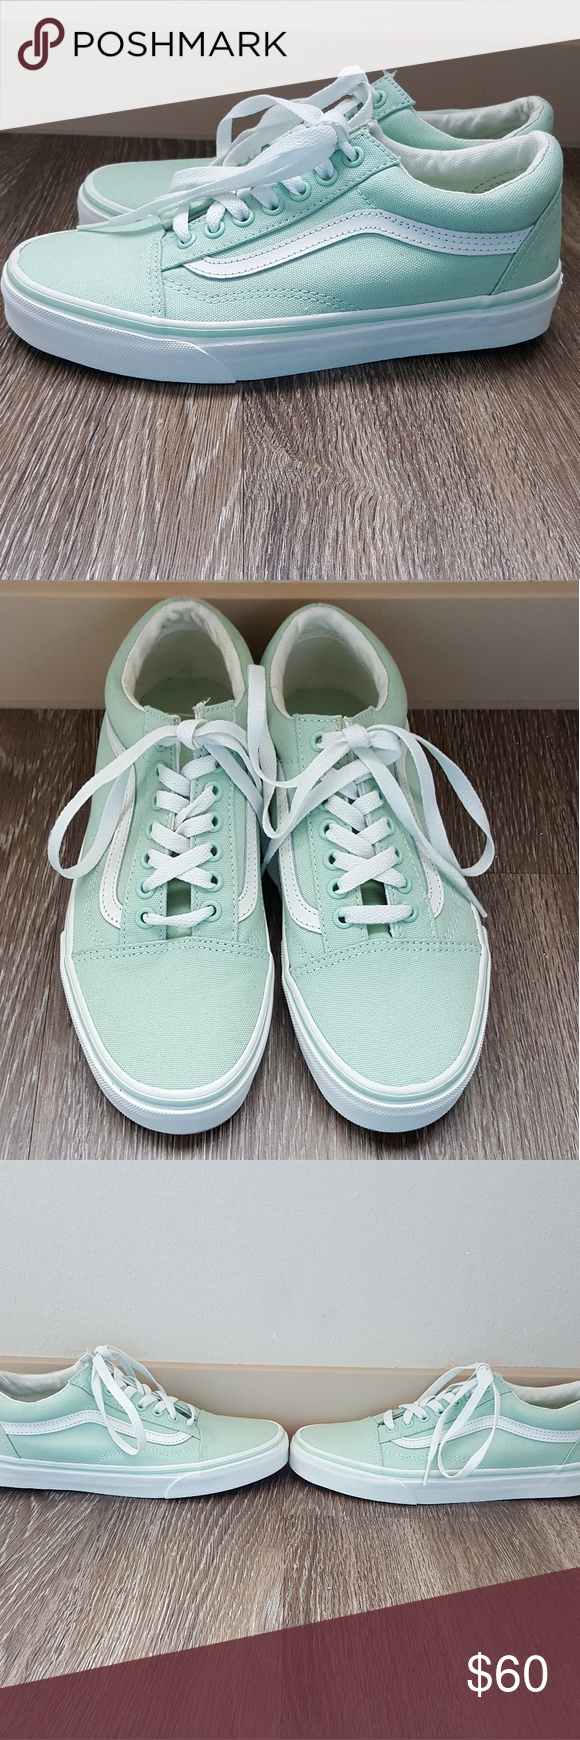 Picks Old Nwt Sneakers Vans Green Posh Skool Mint New In My fwvCxAxq